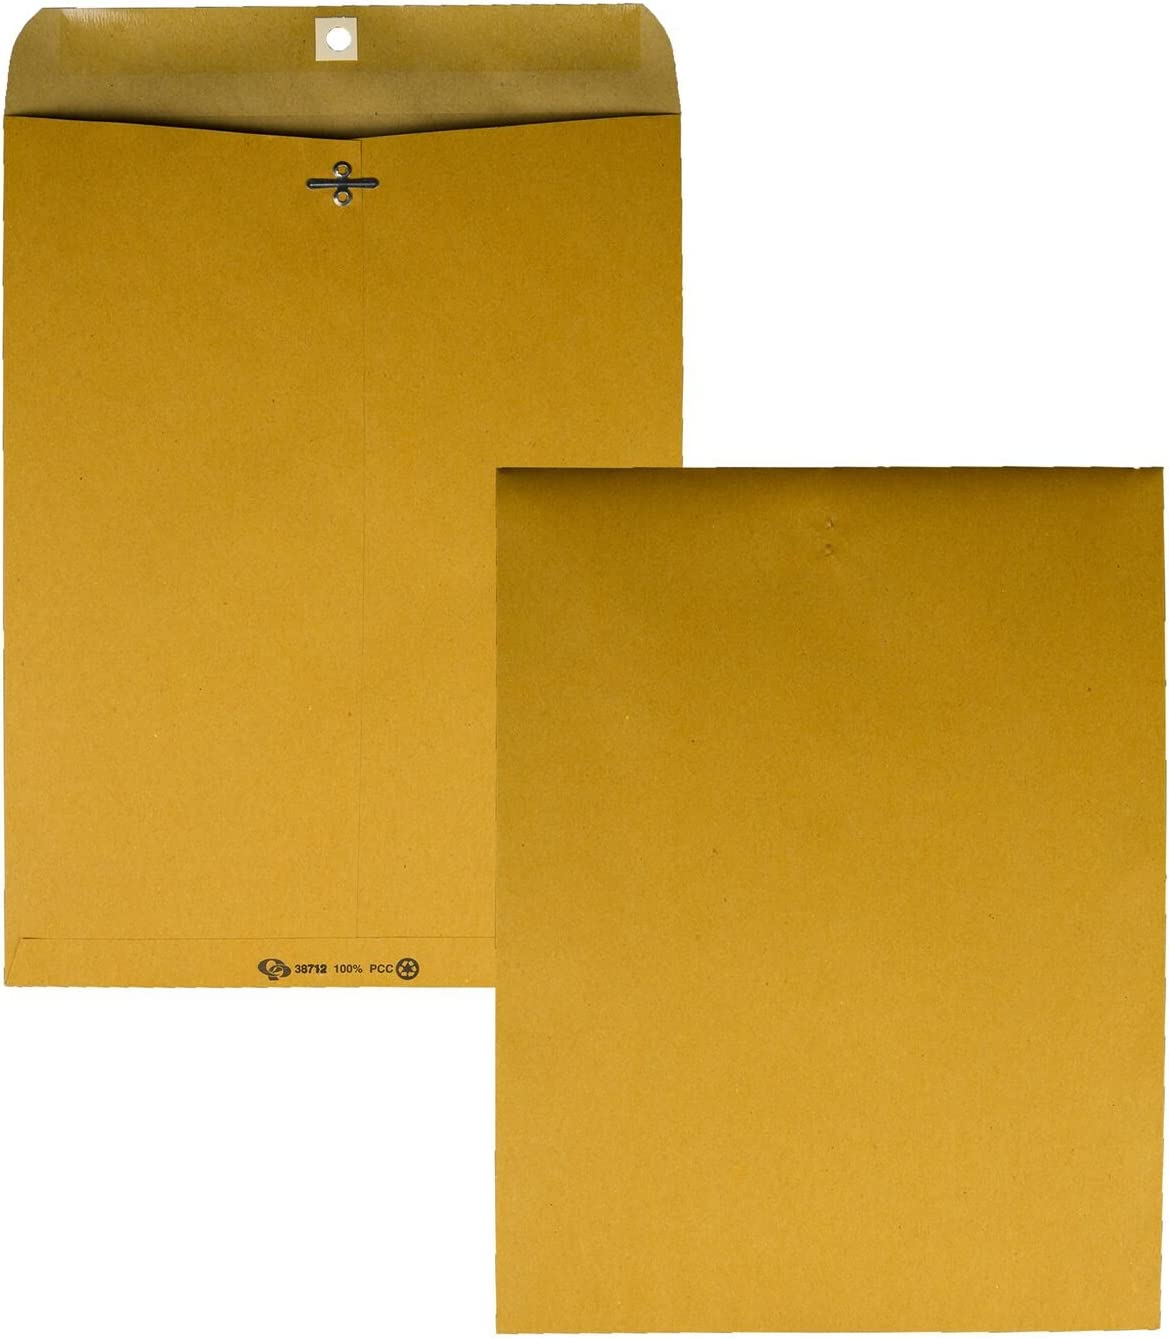 Quality Park 100% Finally resale start Recycled Ranking TOP11 Catalog Envelope x Cla 10 13 inches